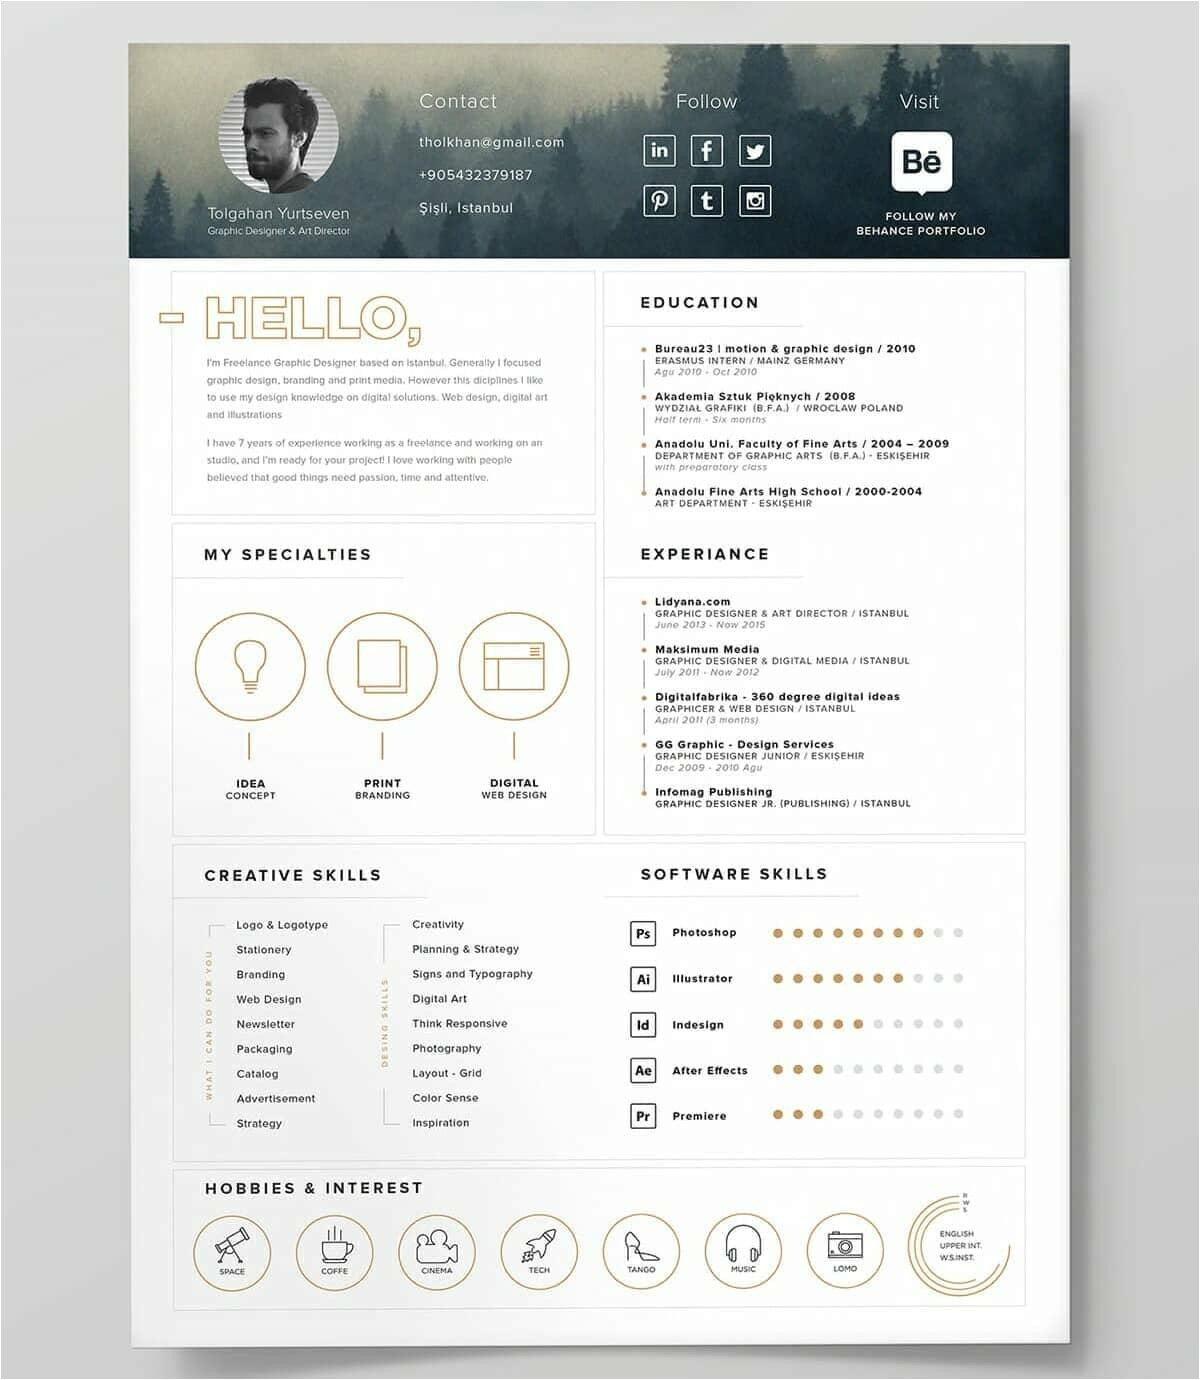 Iworkcommunity Resume Templates Best Resume Templates 15 Examples to Download Use Right